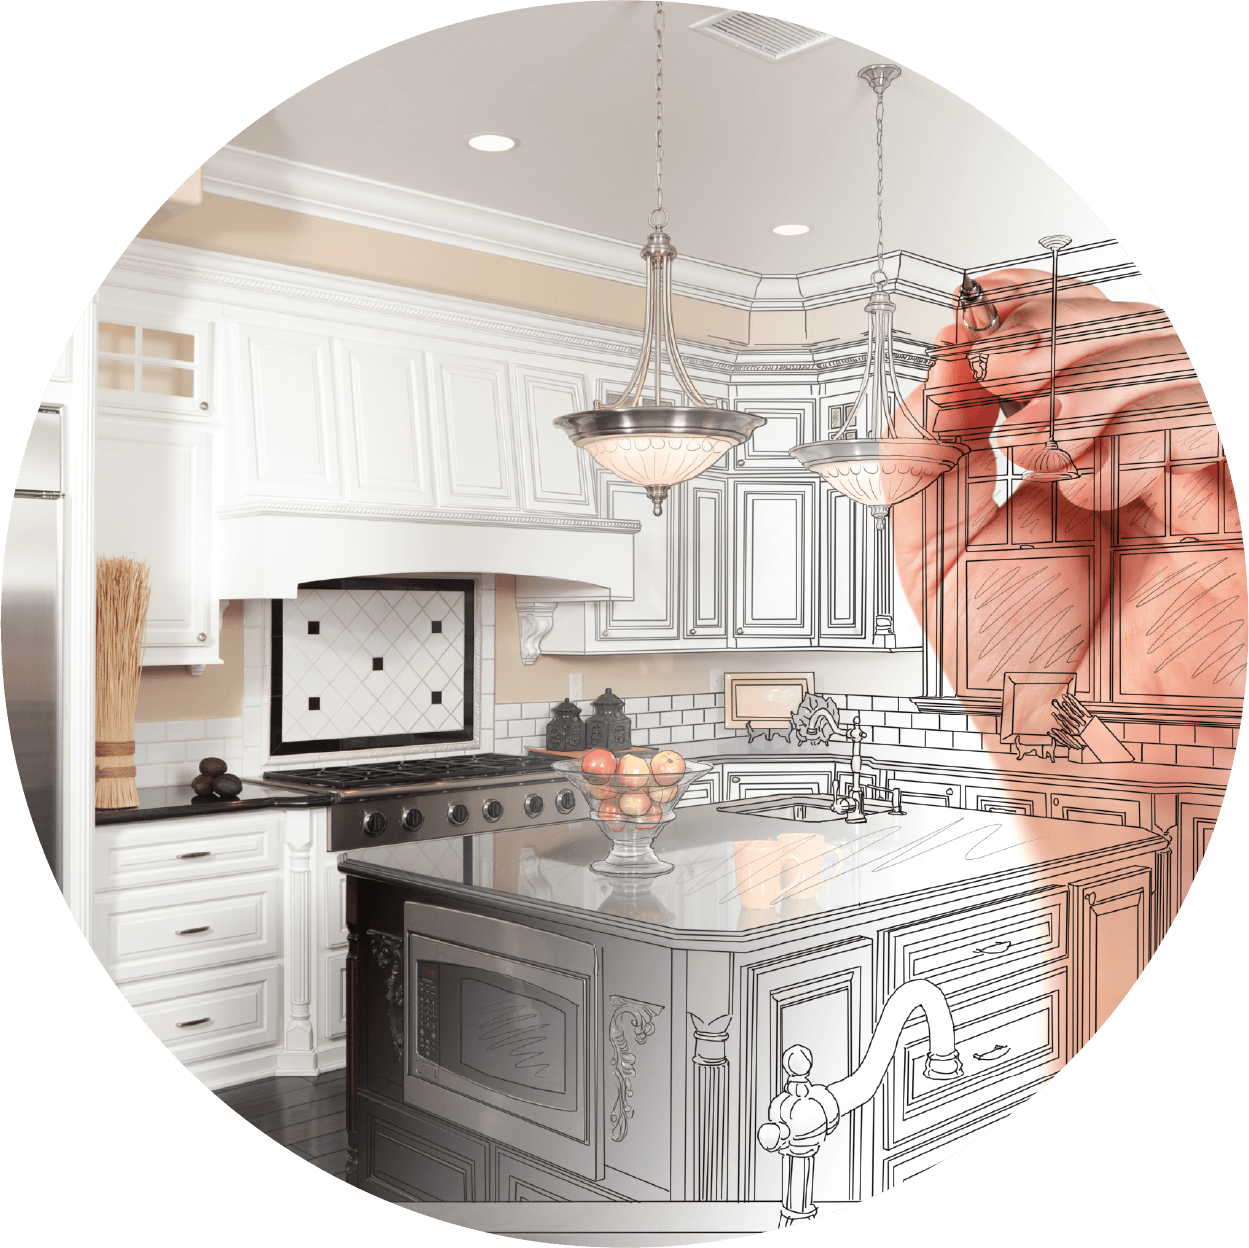 Replace Or Refinish Kitchen Cabinets: Kitchen Cabinets Refinishing, Kitchen Countertops